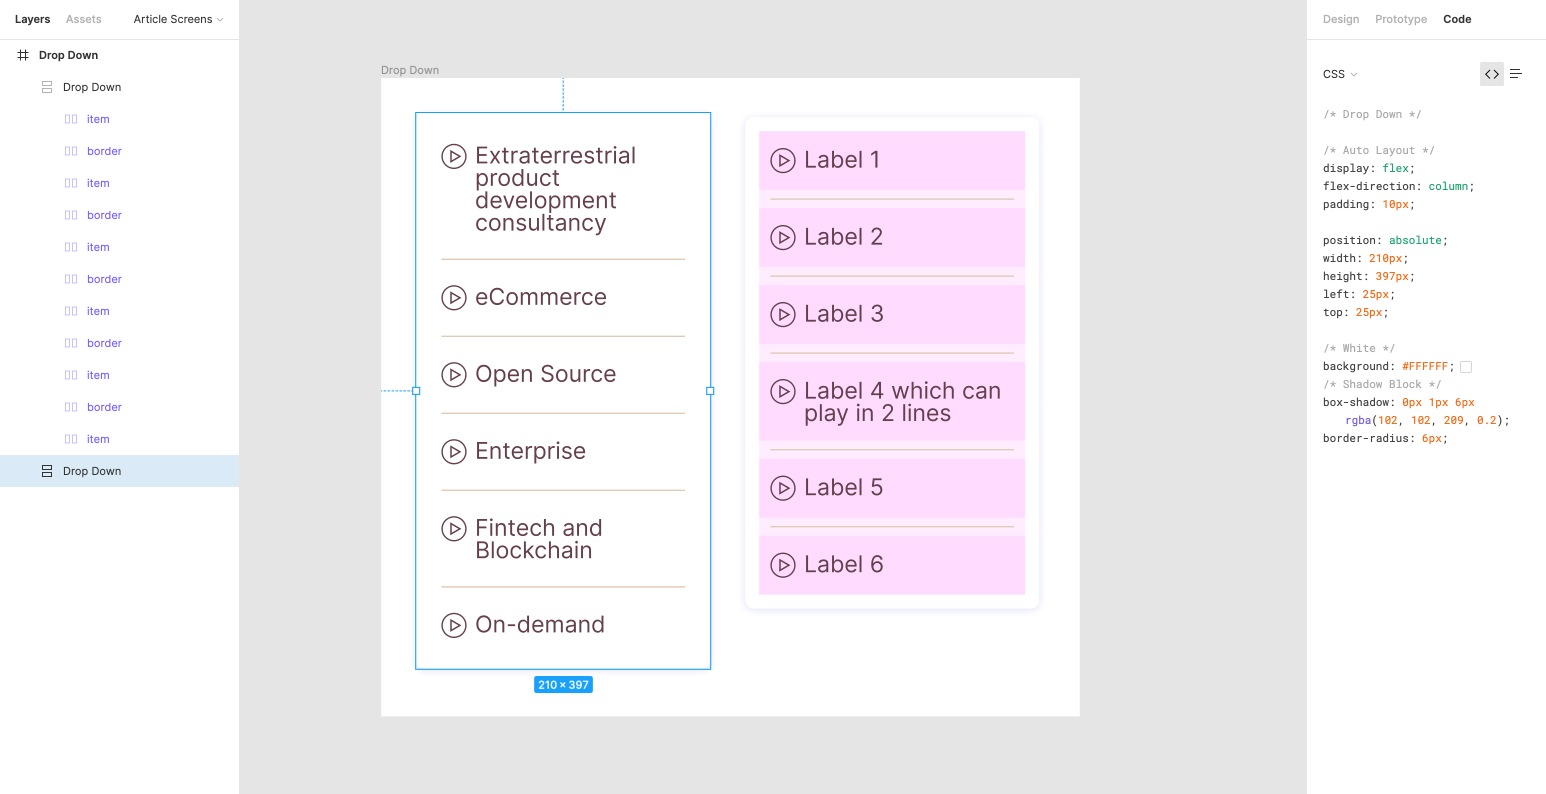 Highly customizable drop-down component that allows to control separators, wrapper, etc.